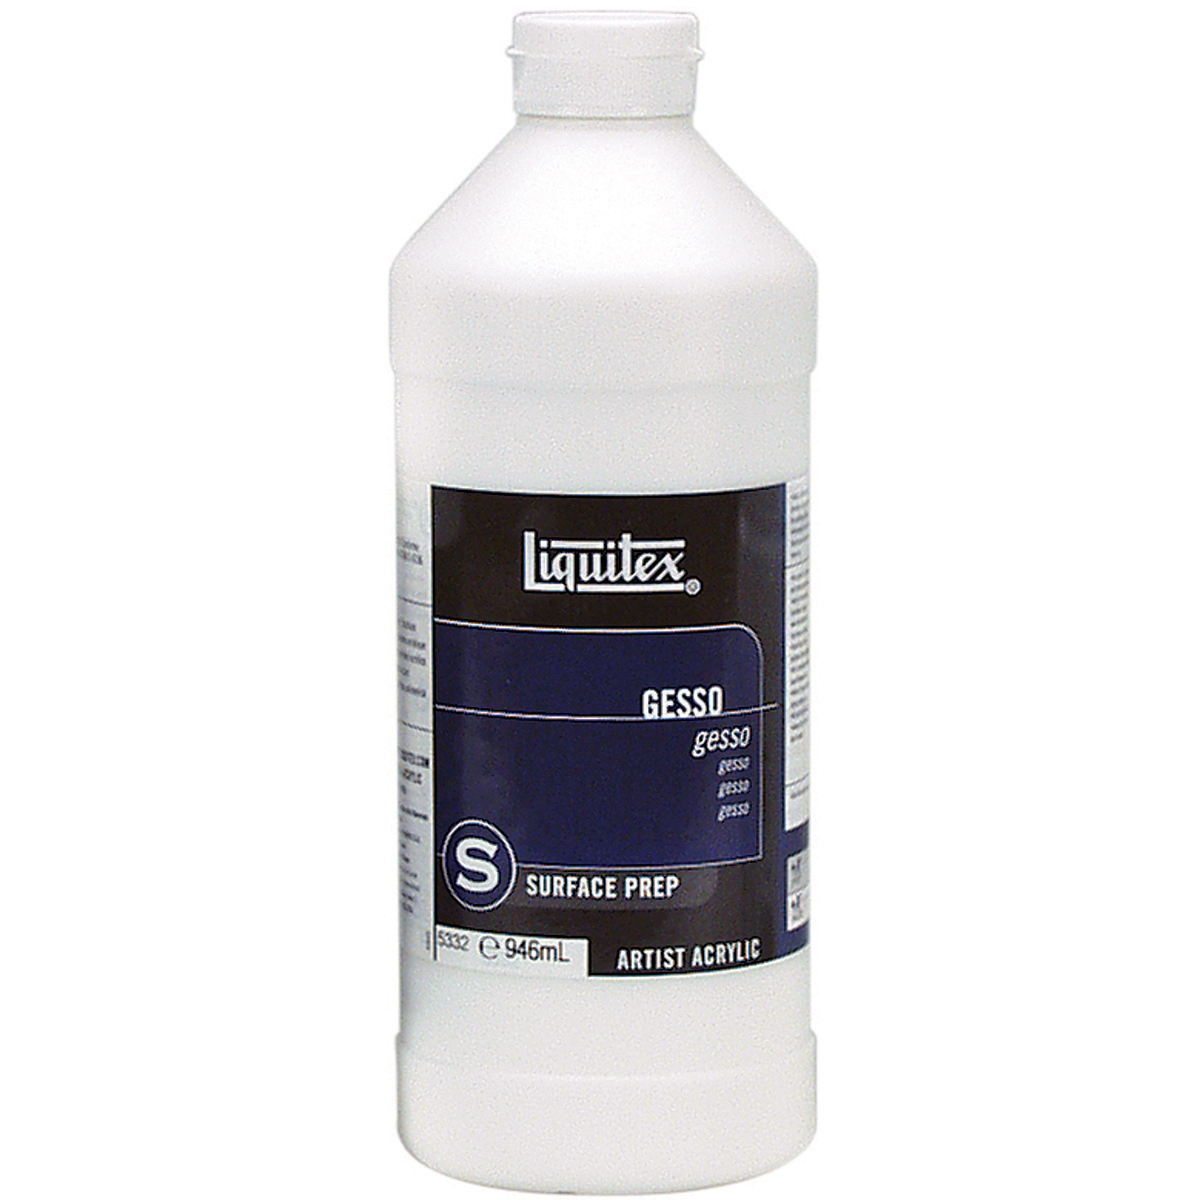 Liquitex Acrylic Gesso Surface Prep-White 32oz